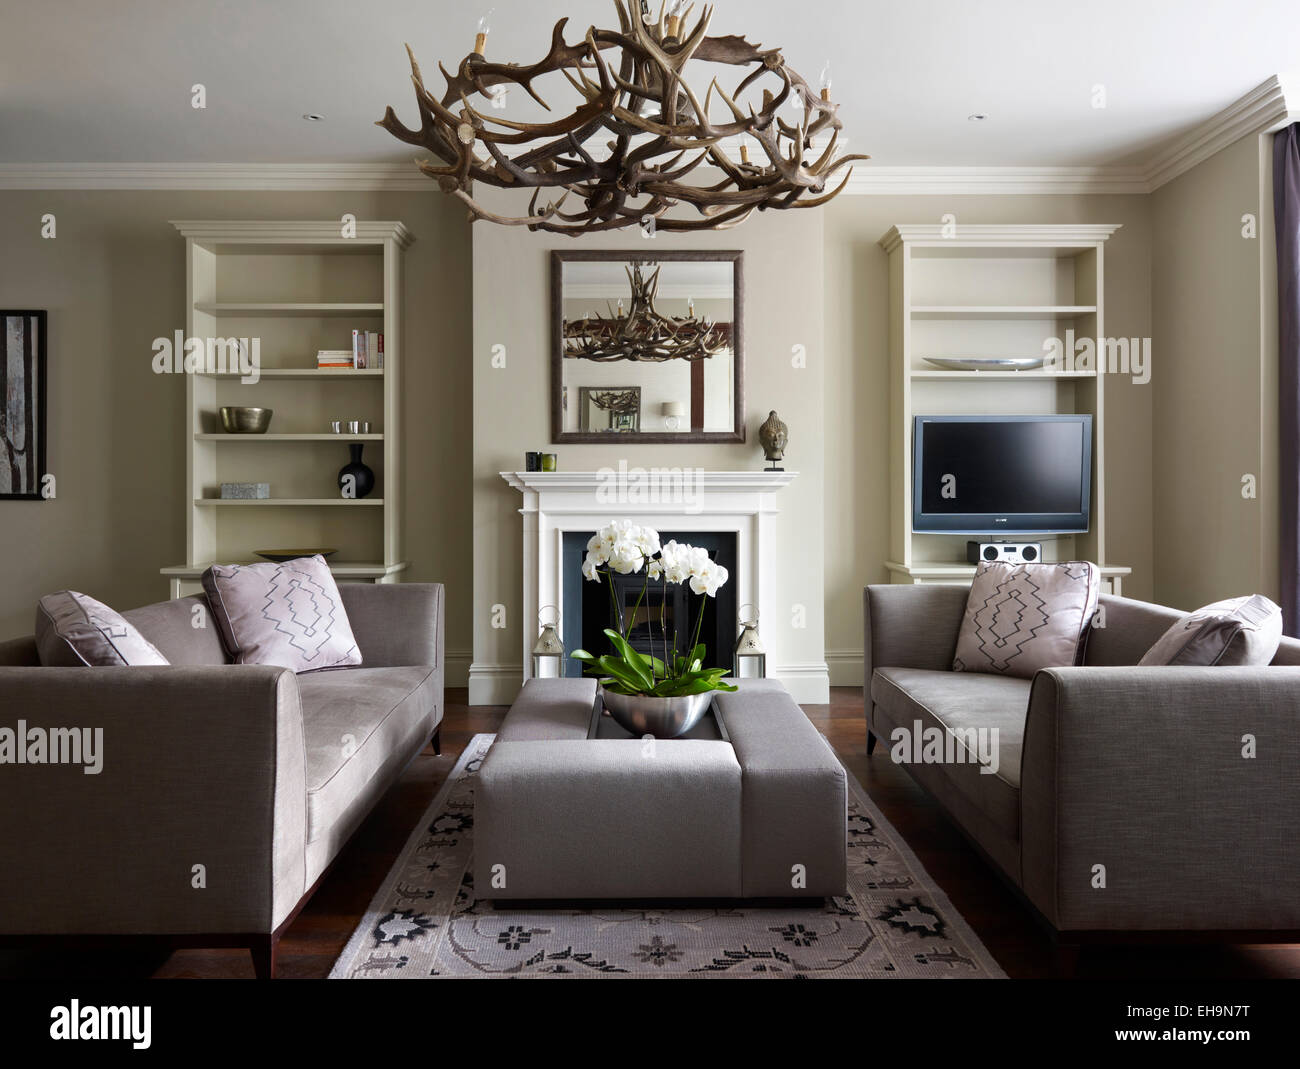 Modern lounge with sofas bookshelves and antler lighting fixture with reflection in mounted mirror in stevenage road home uk